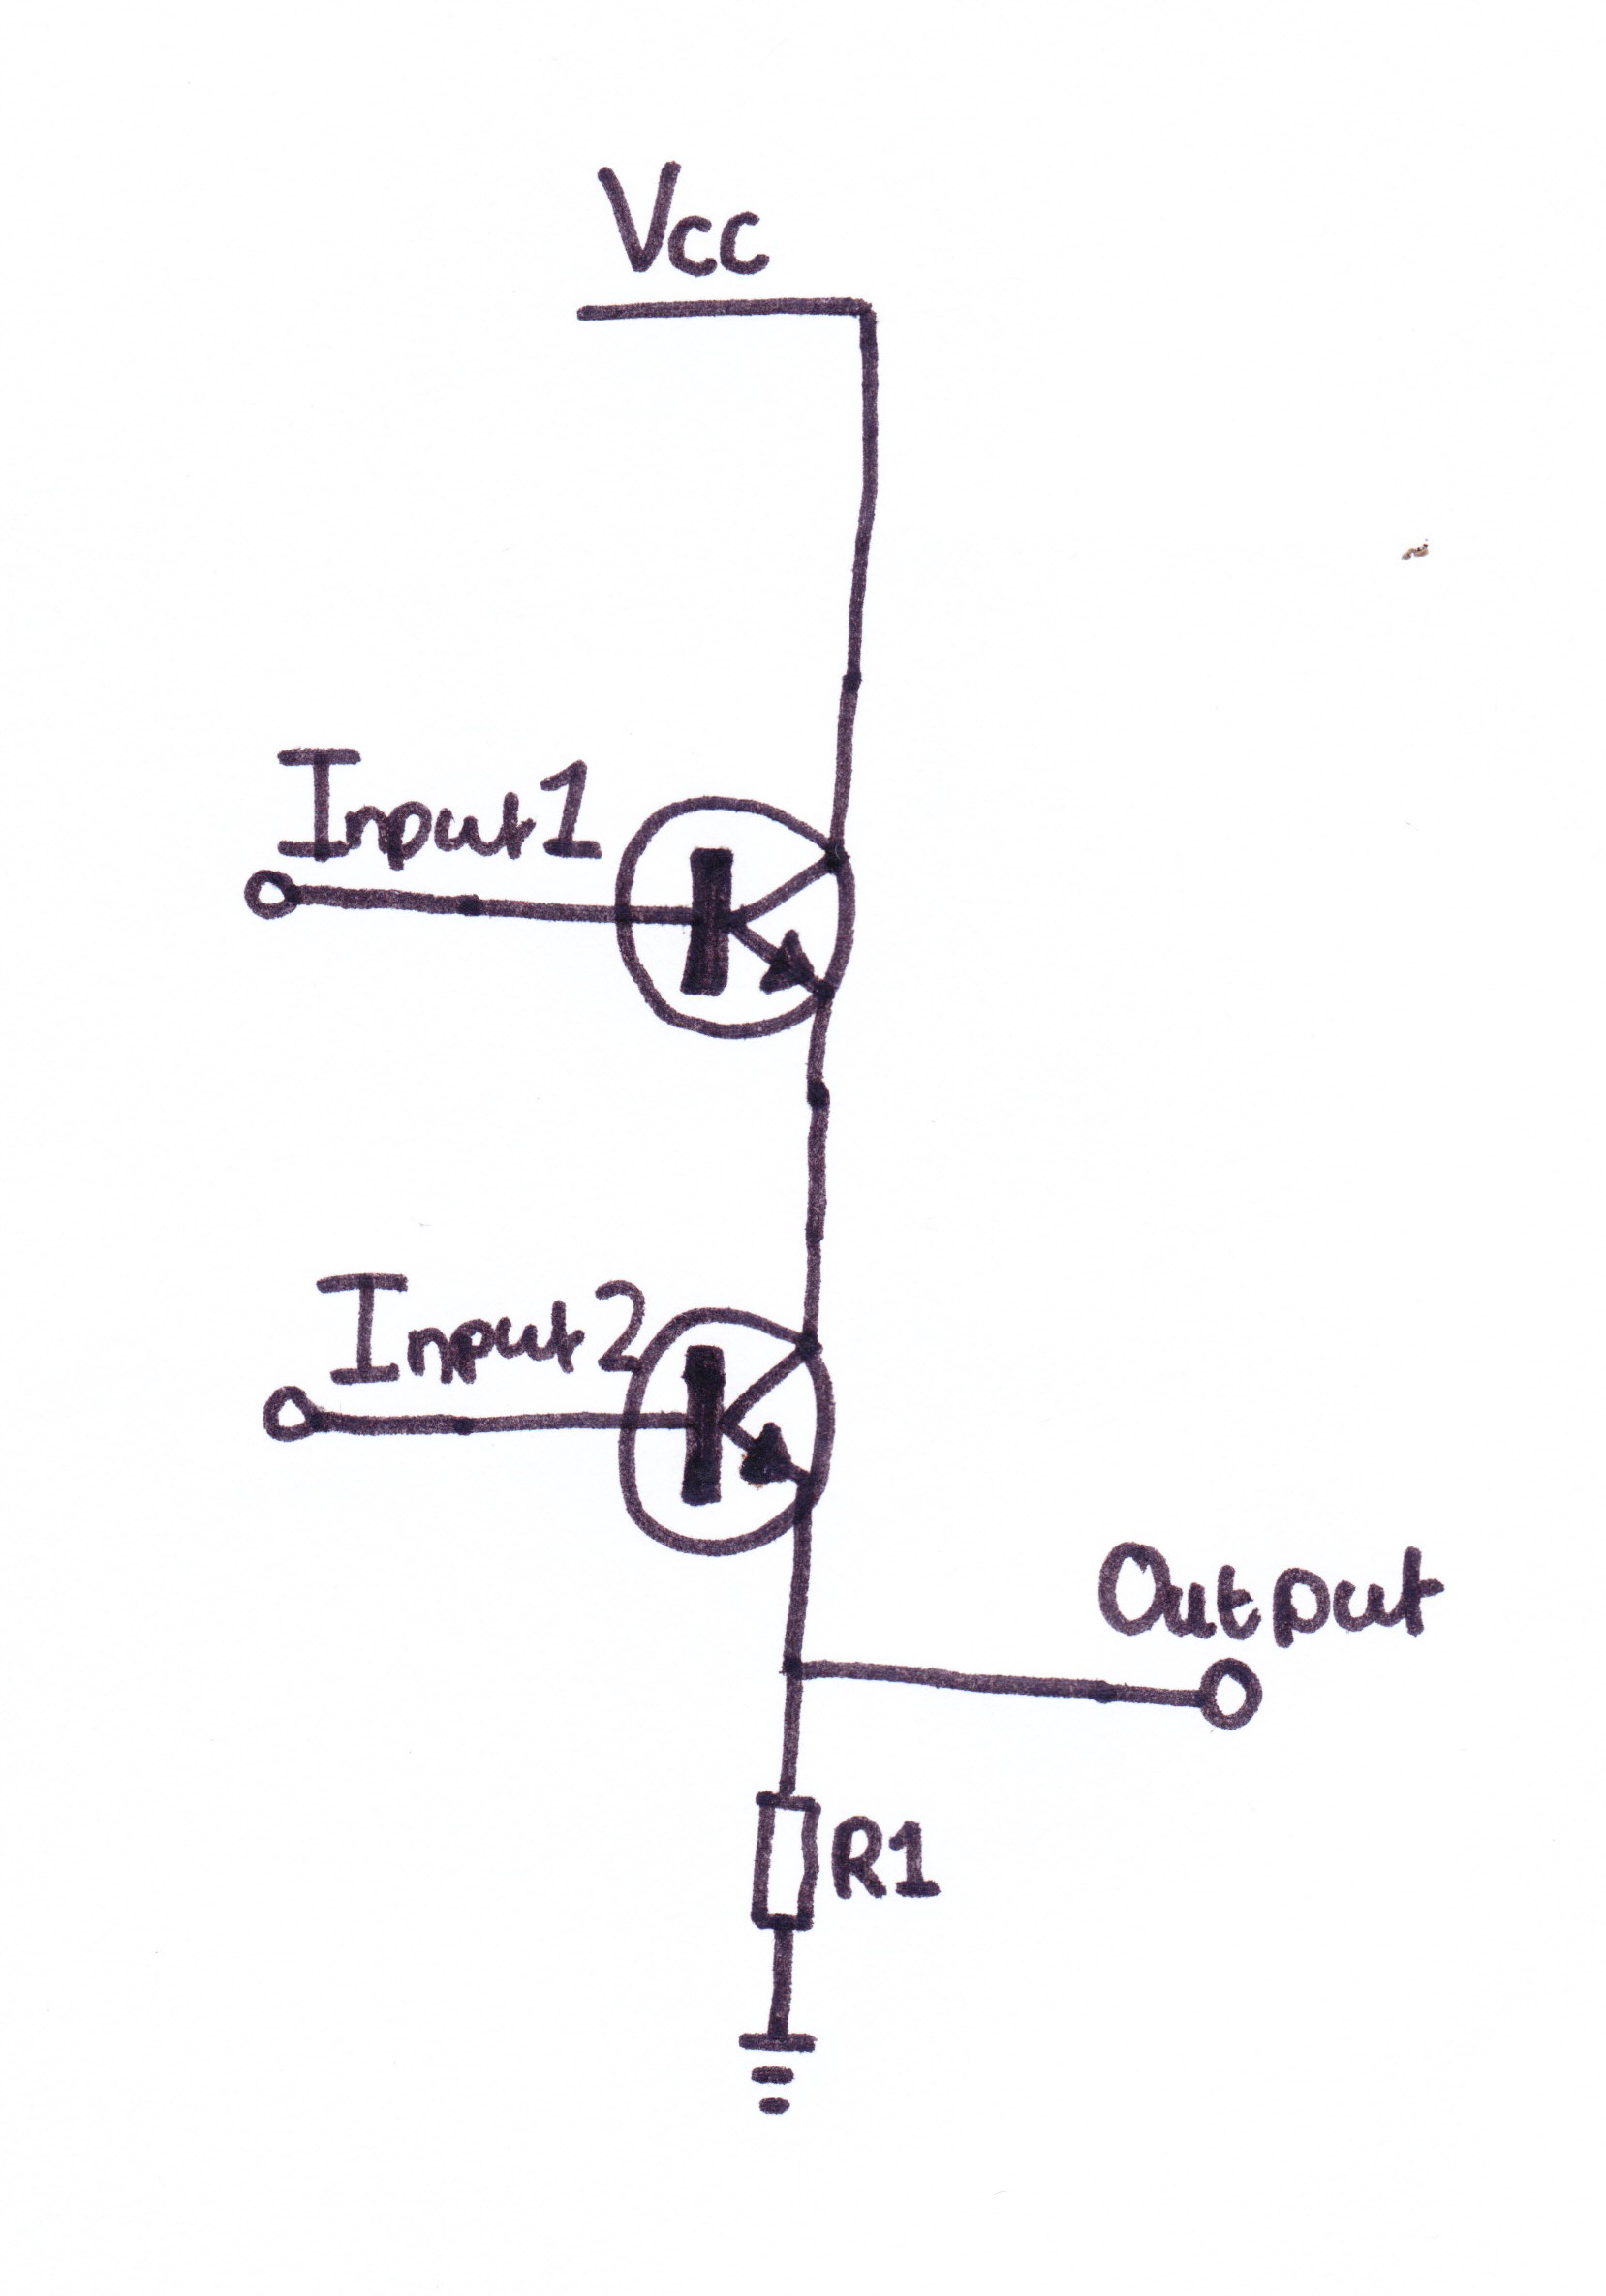 AND GATE USING A TRANSISTOR